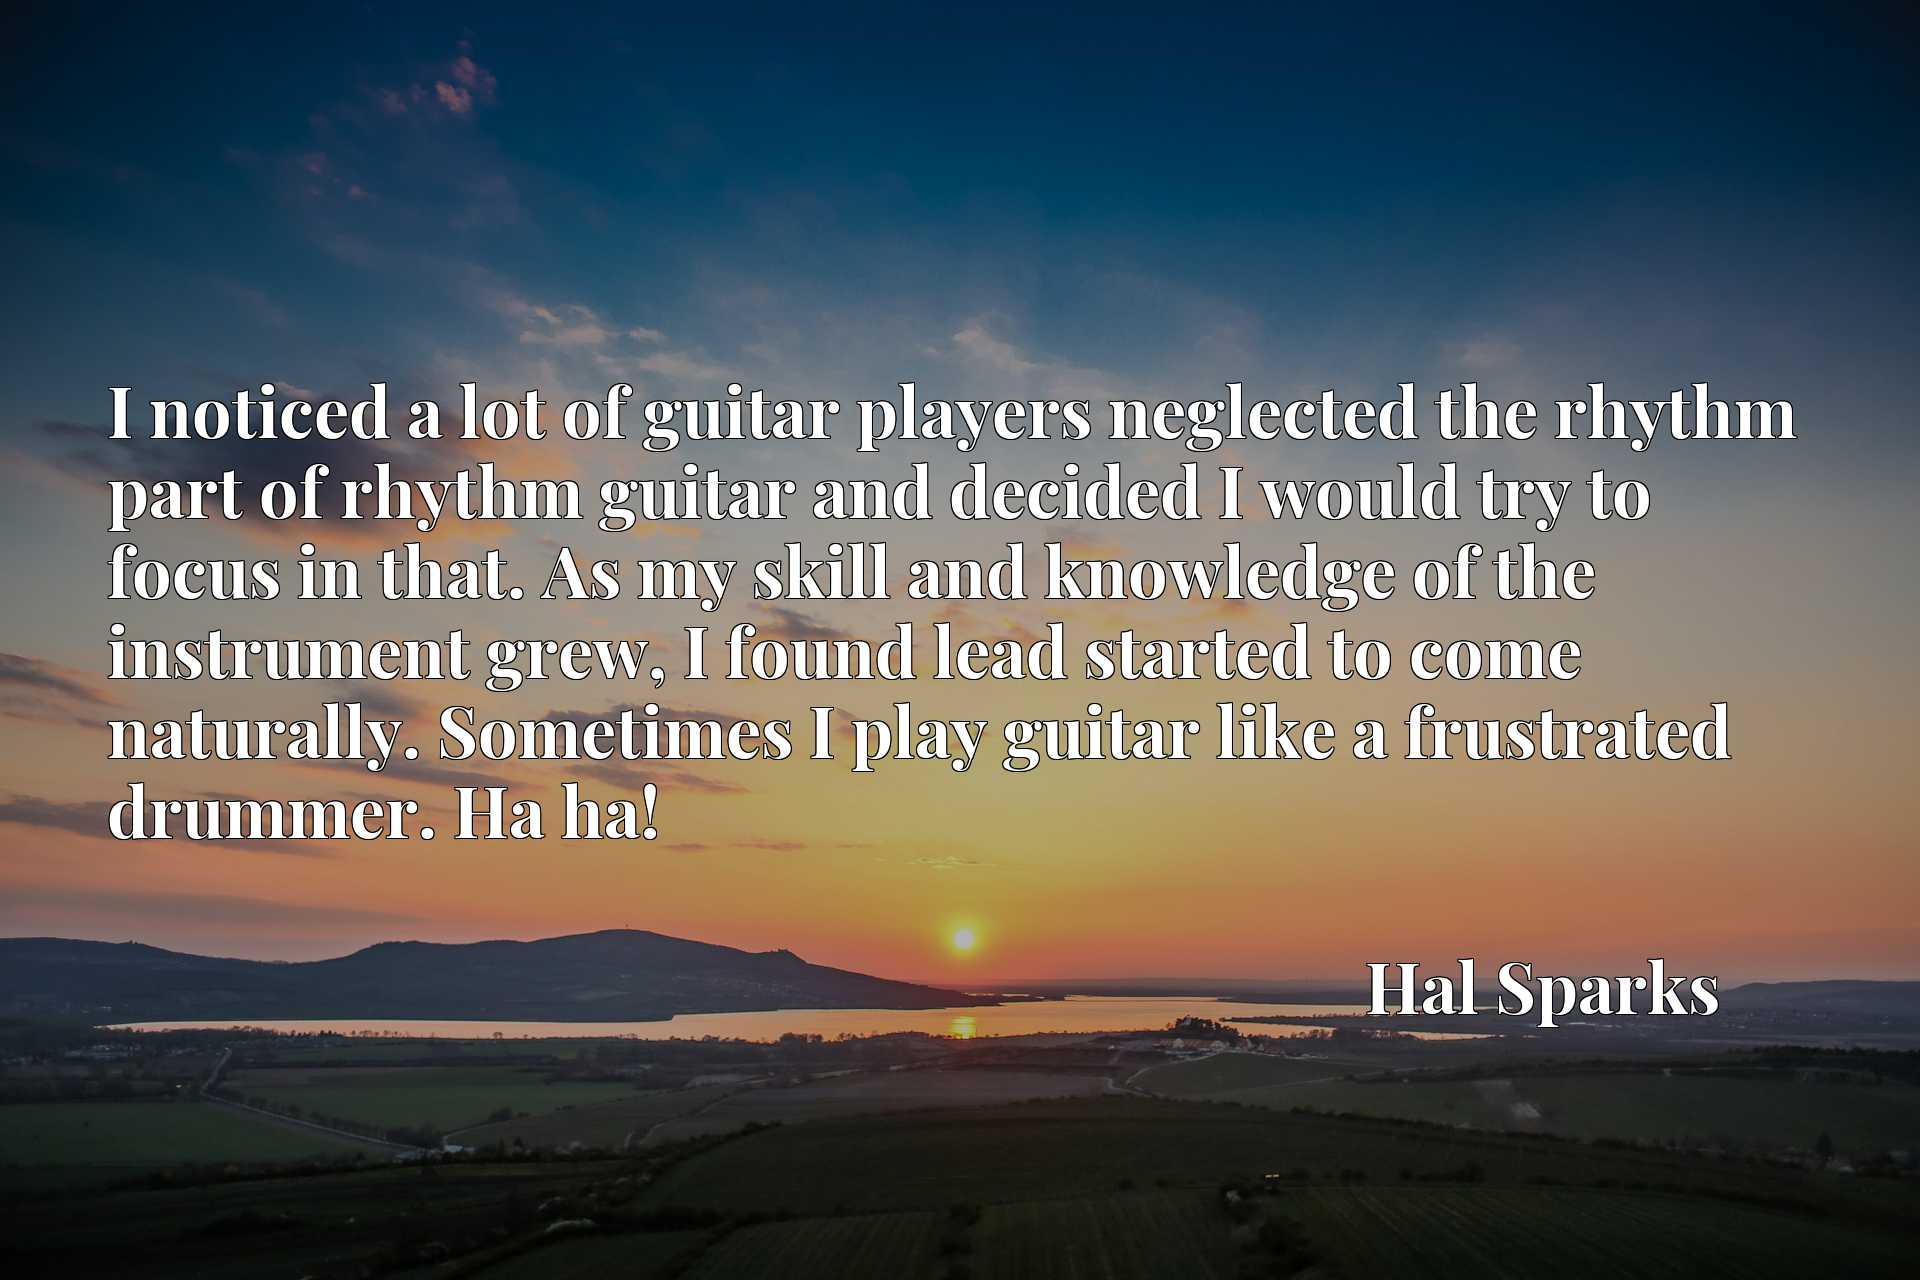 Quote Picture :I noticed a lot of guitar players neglected the rhythm part of rhythm guitar and decided I would try to focus in that. As my skill and knowledge of the instrument grew, I found lead started to come naturally. Sometimes I play guitar like a frustrated drummer. Ha ha!